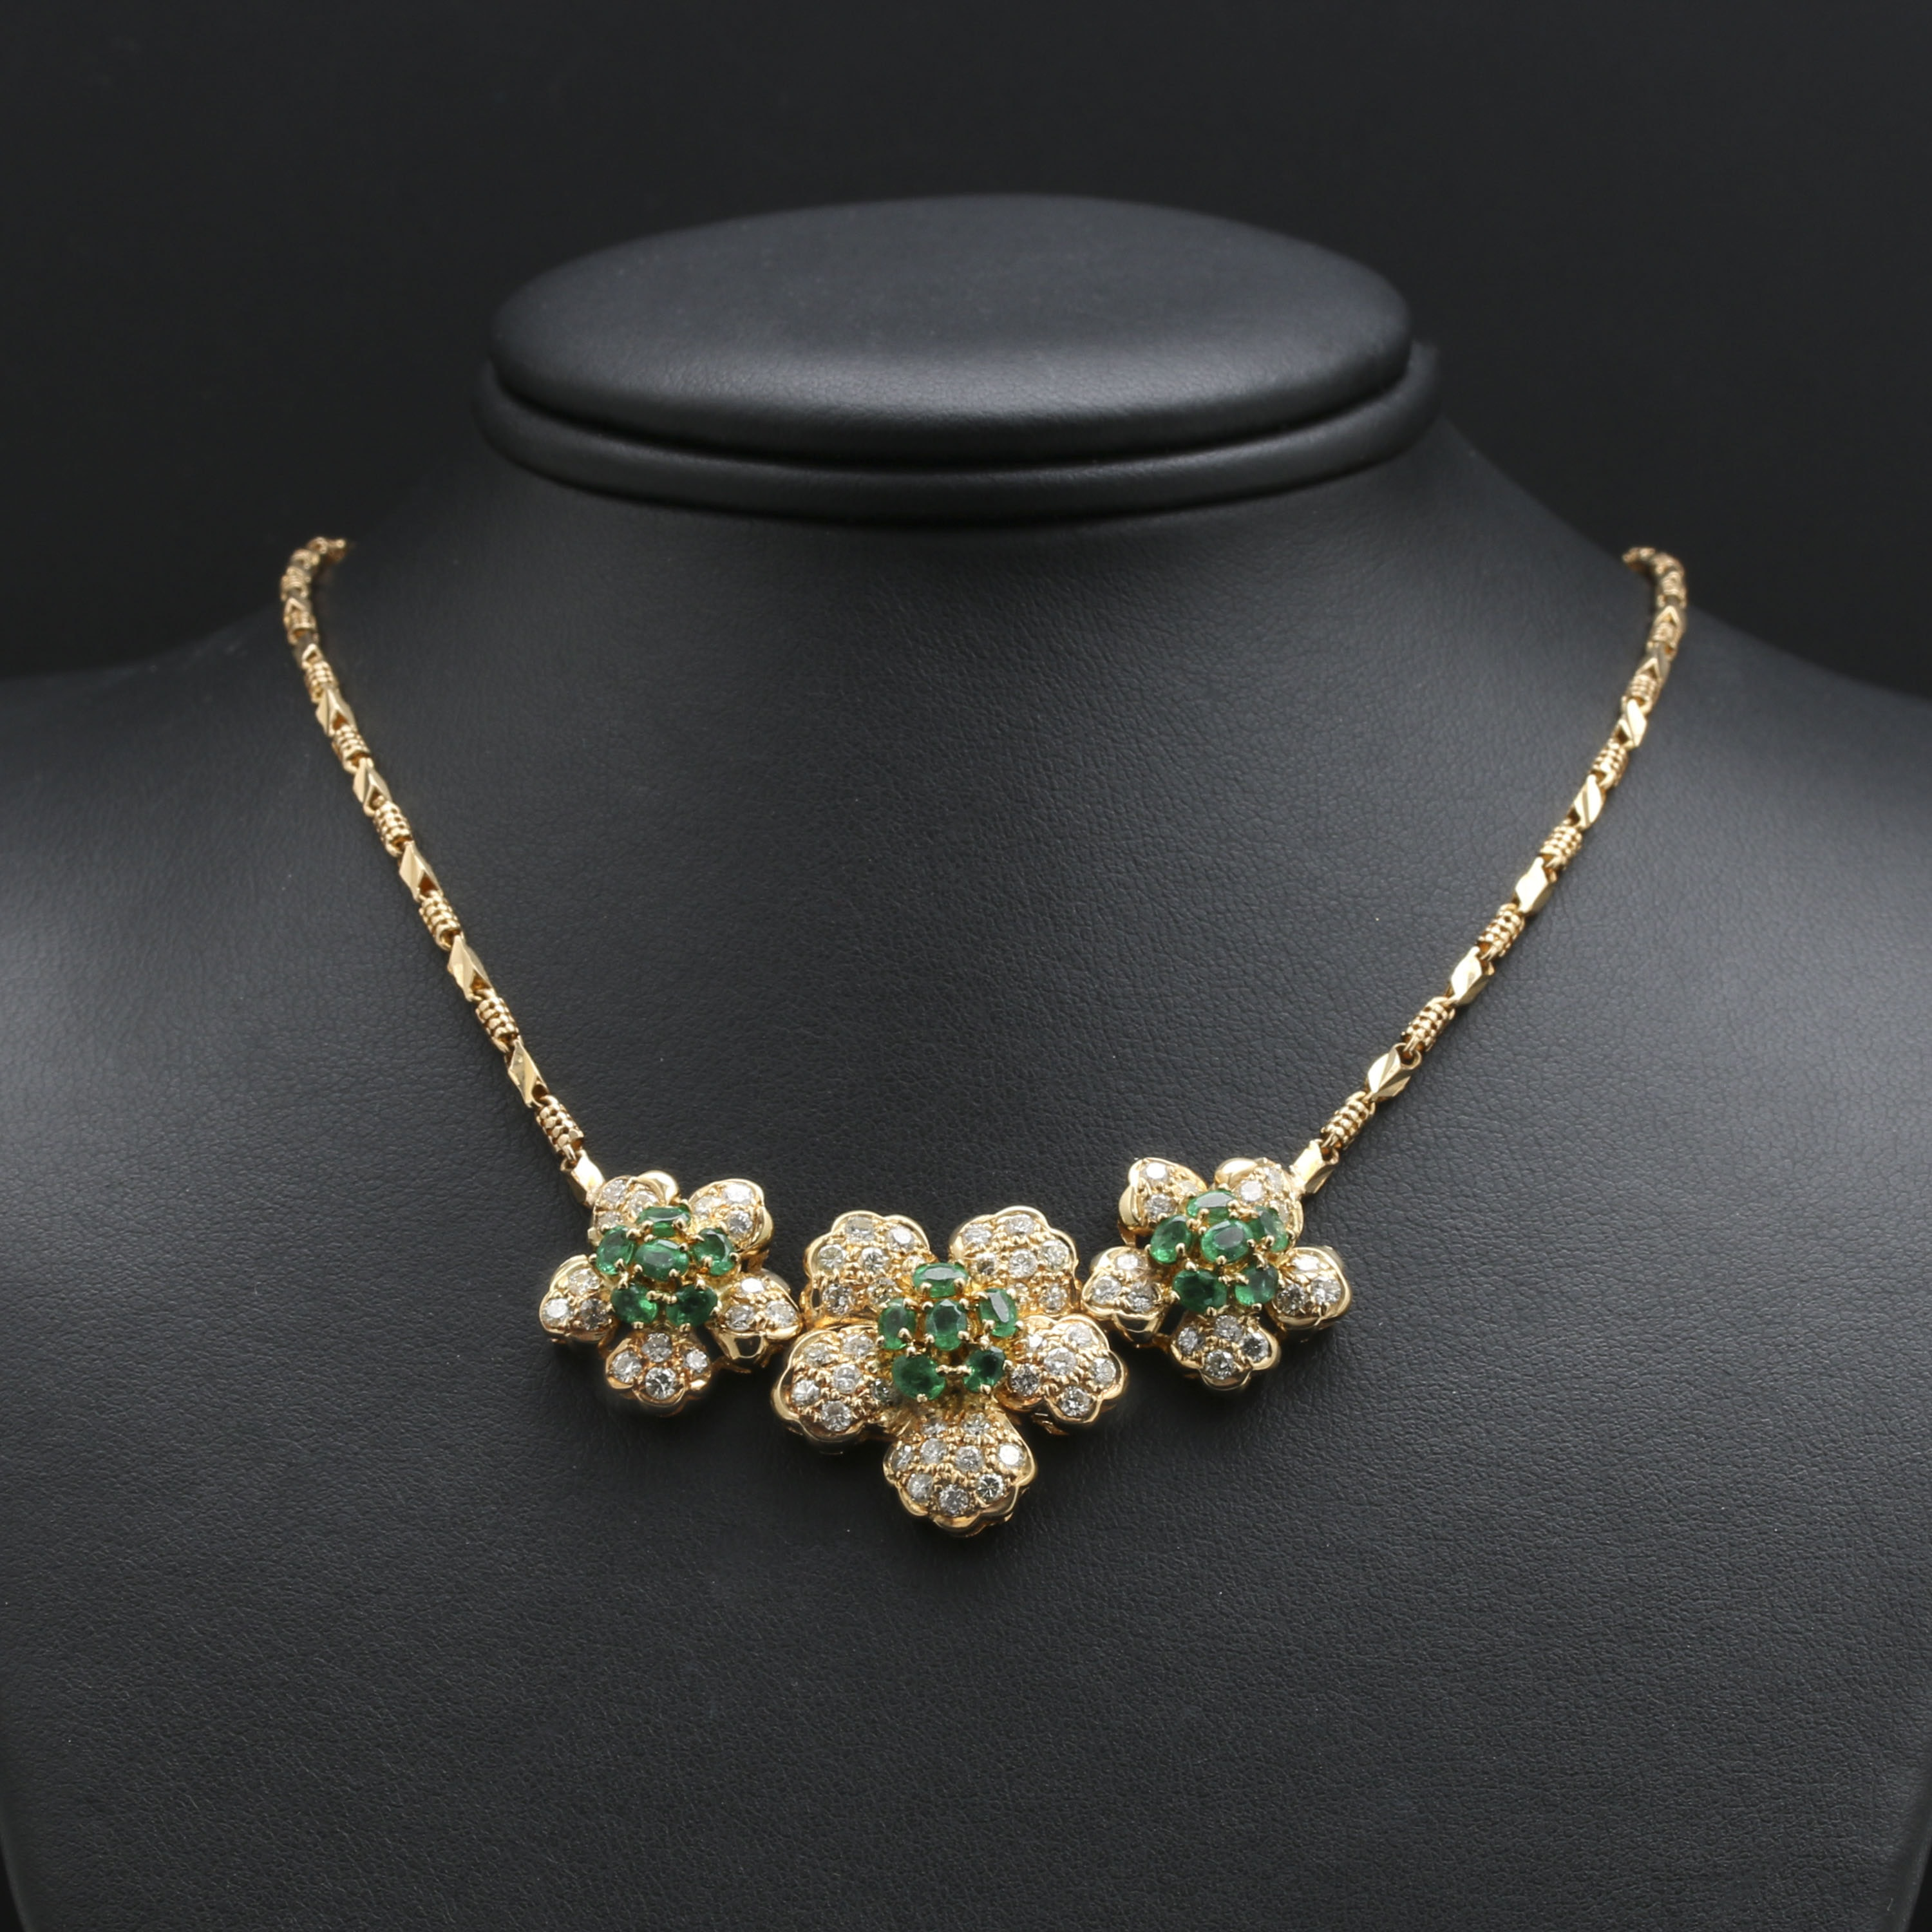 18K Yellow Gold 1.80 CTW Emerald and 2.35 CTW Diamond Necklace